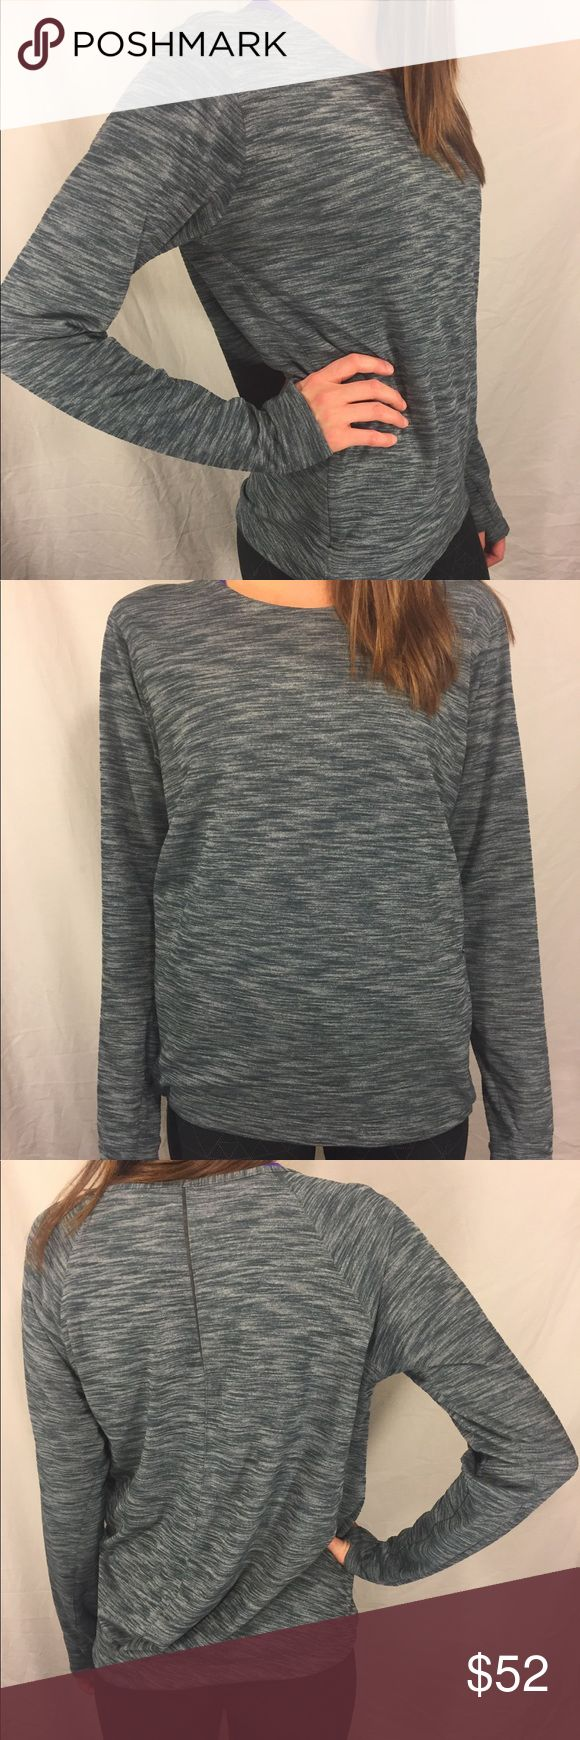 Lulu lemon Long Sleeve Shirt w/ Pockets, loose fit Lulu lemon long sleeve shirt. Size 8. Color is grey-green. Loose fit perfect for layering. I would throw this on over a tank. Self: 48% nylon, 44% polyester, 8% Lycra elastane. Lining: 86% polyester, 14% elastane. Hidden thumb holes to keep your hands warm and sleeves in place. Two hidden zippers in the front make one big pocket, which has a small media pocket perfect for headphones or credit cards. LIGHTLY USED, LIKE NEW! lululemon…